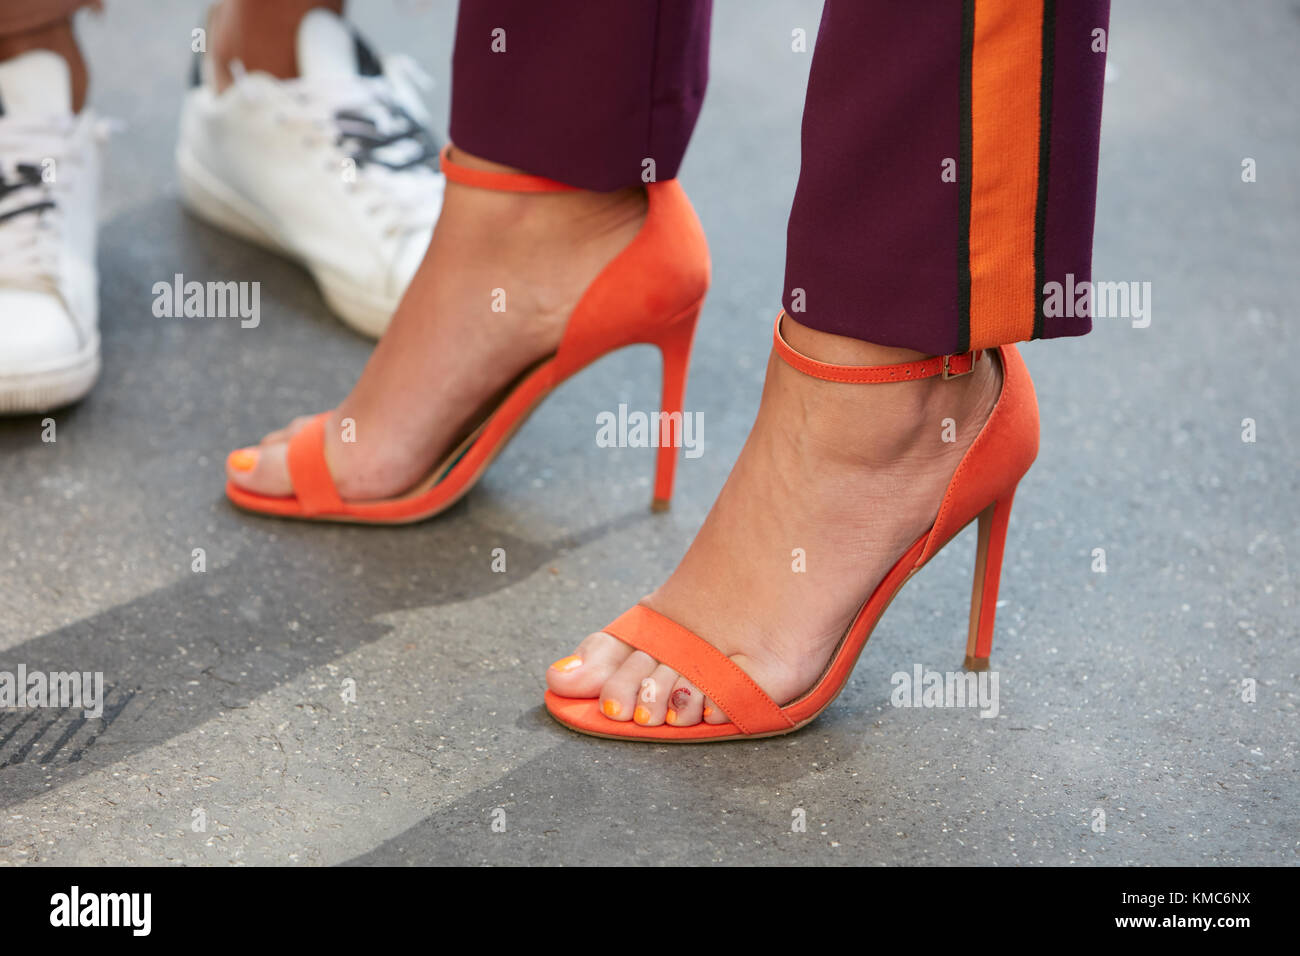 MILAN - SEPTEMBER 23: Woman with orange high heel open shoes and ...